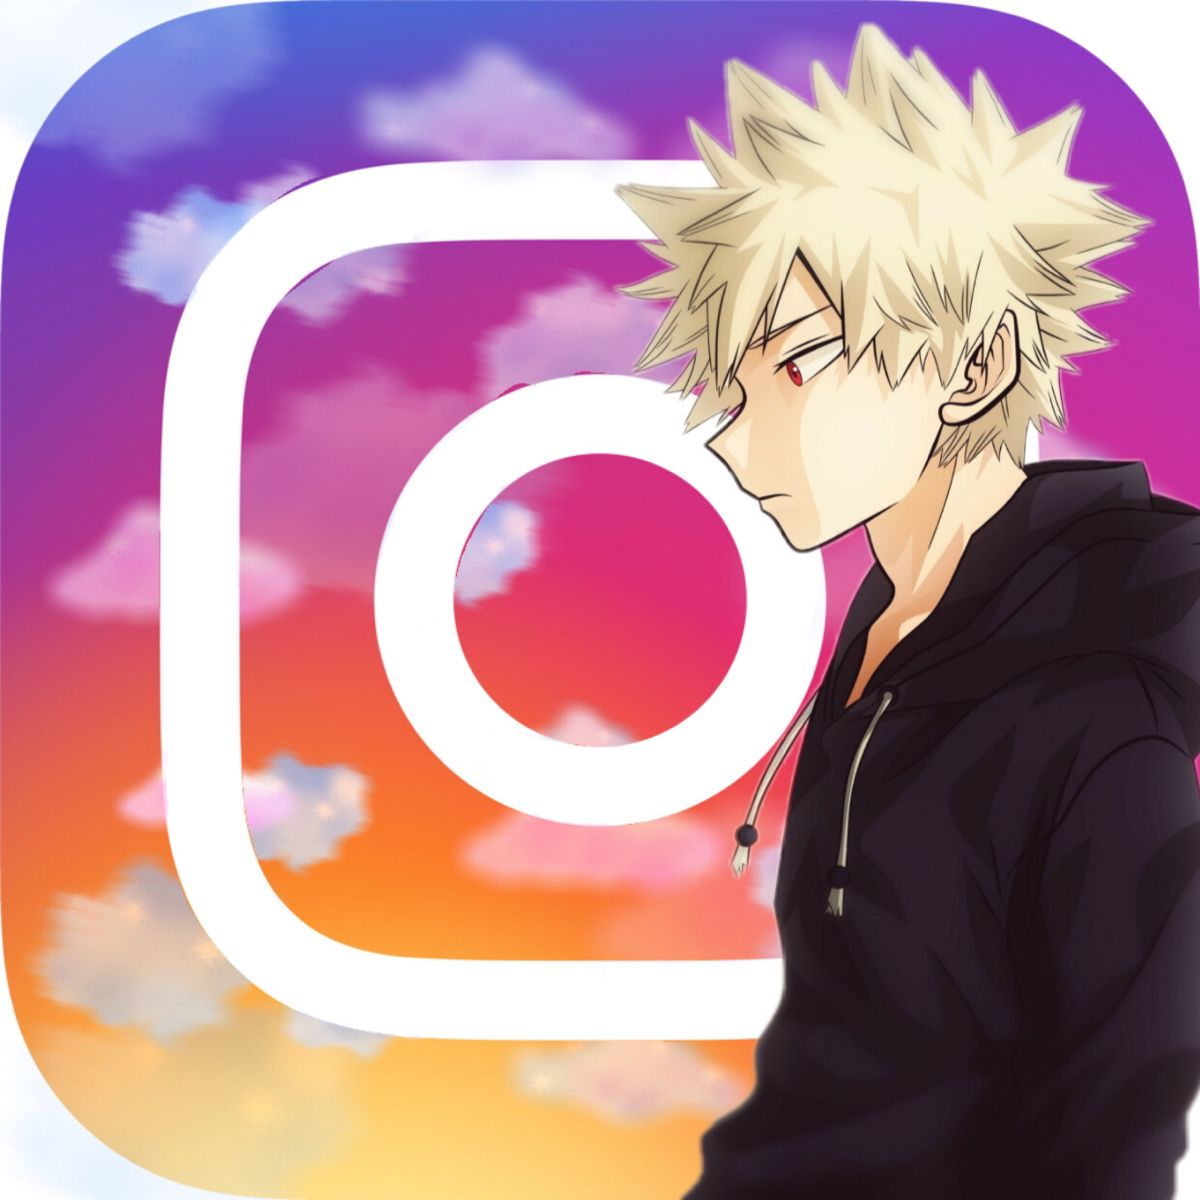 Bakugou In 2020 Iphone Icon App Anime Animated Icons